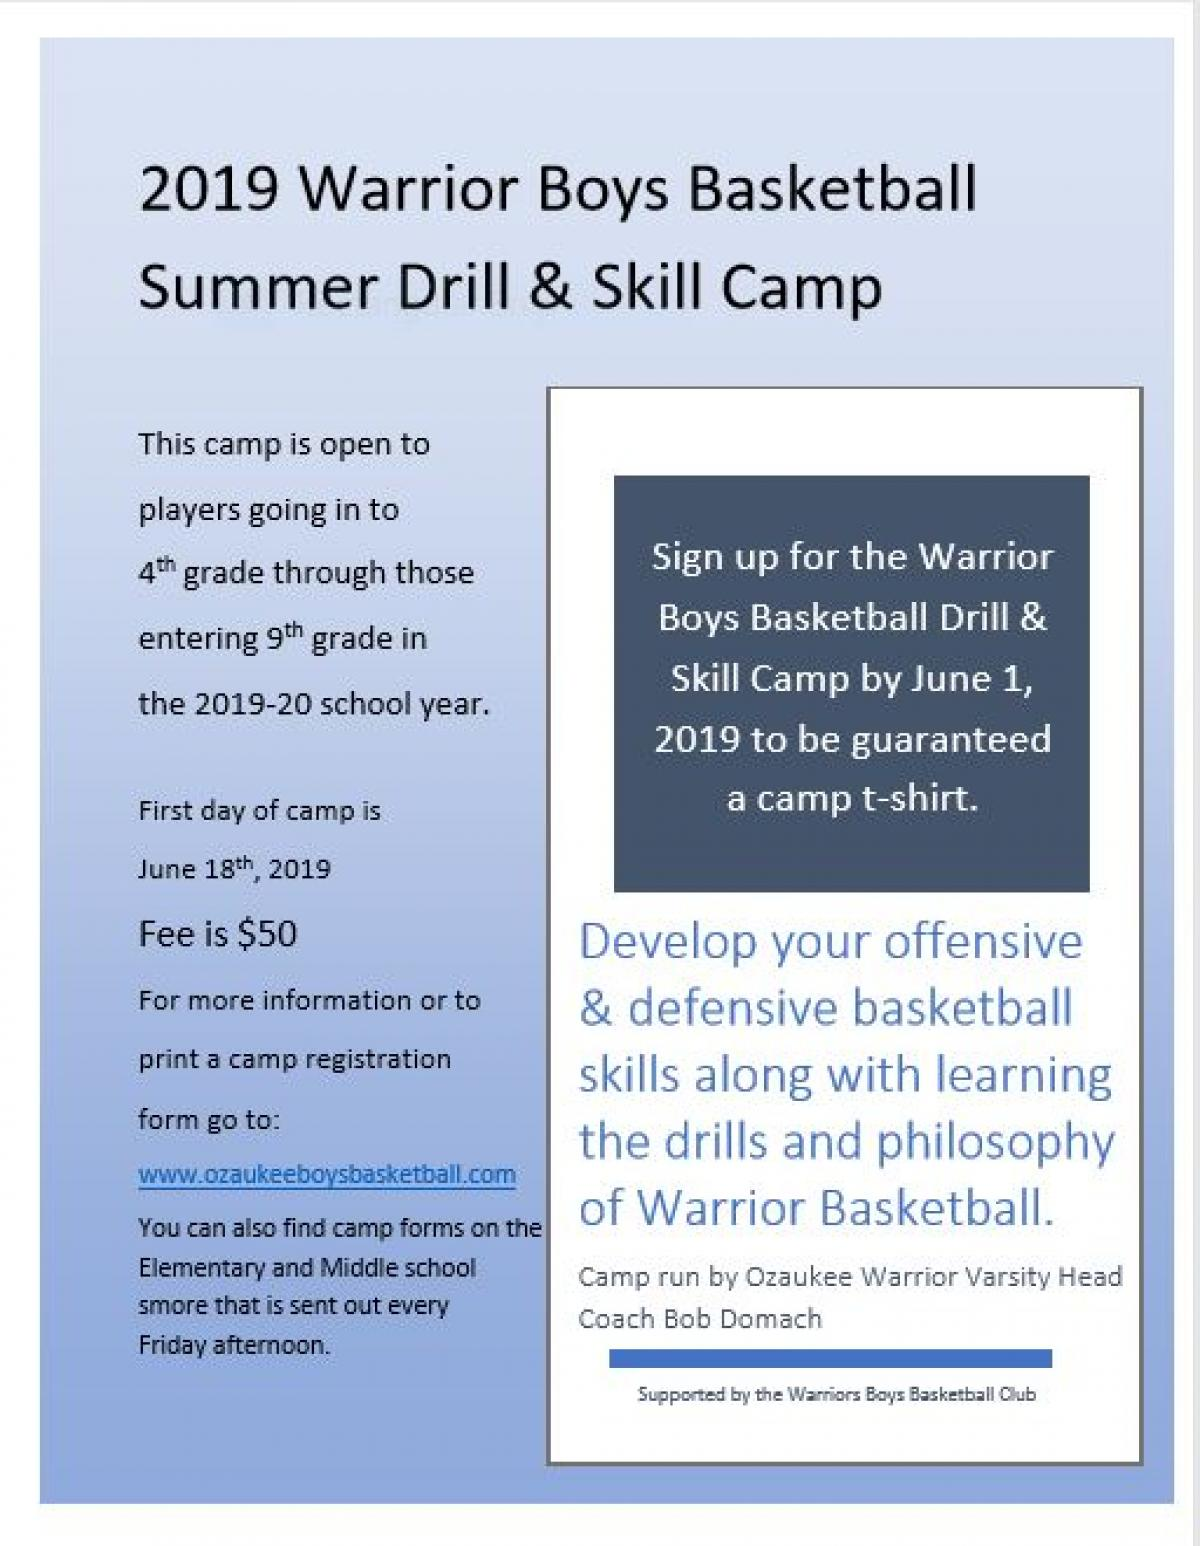 2019 Summer Drill and Skill Camp is now accepting Registrations!